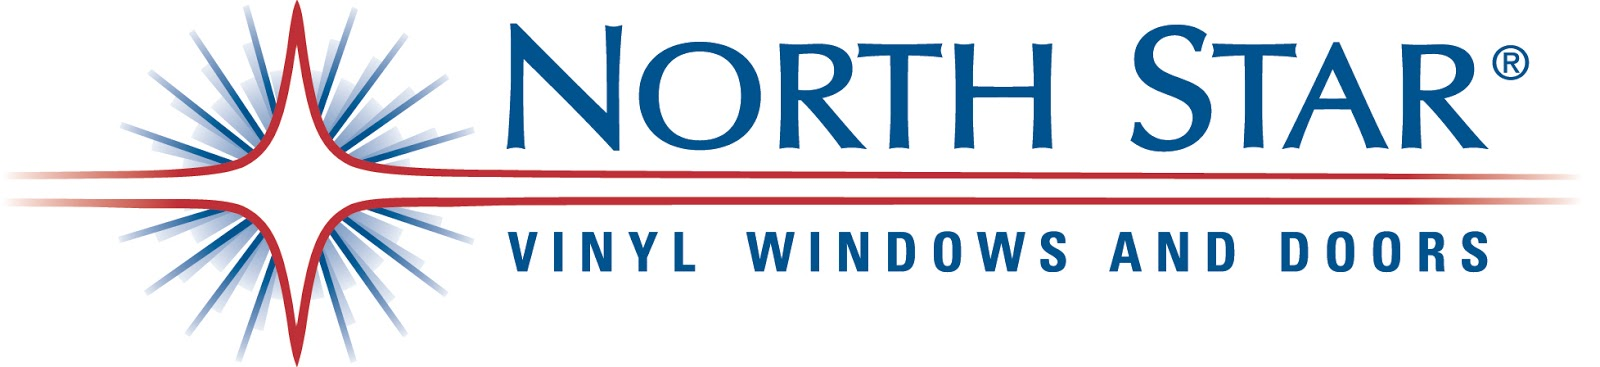 North Star Windows And Doors Builds Success In Elgin County